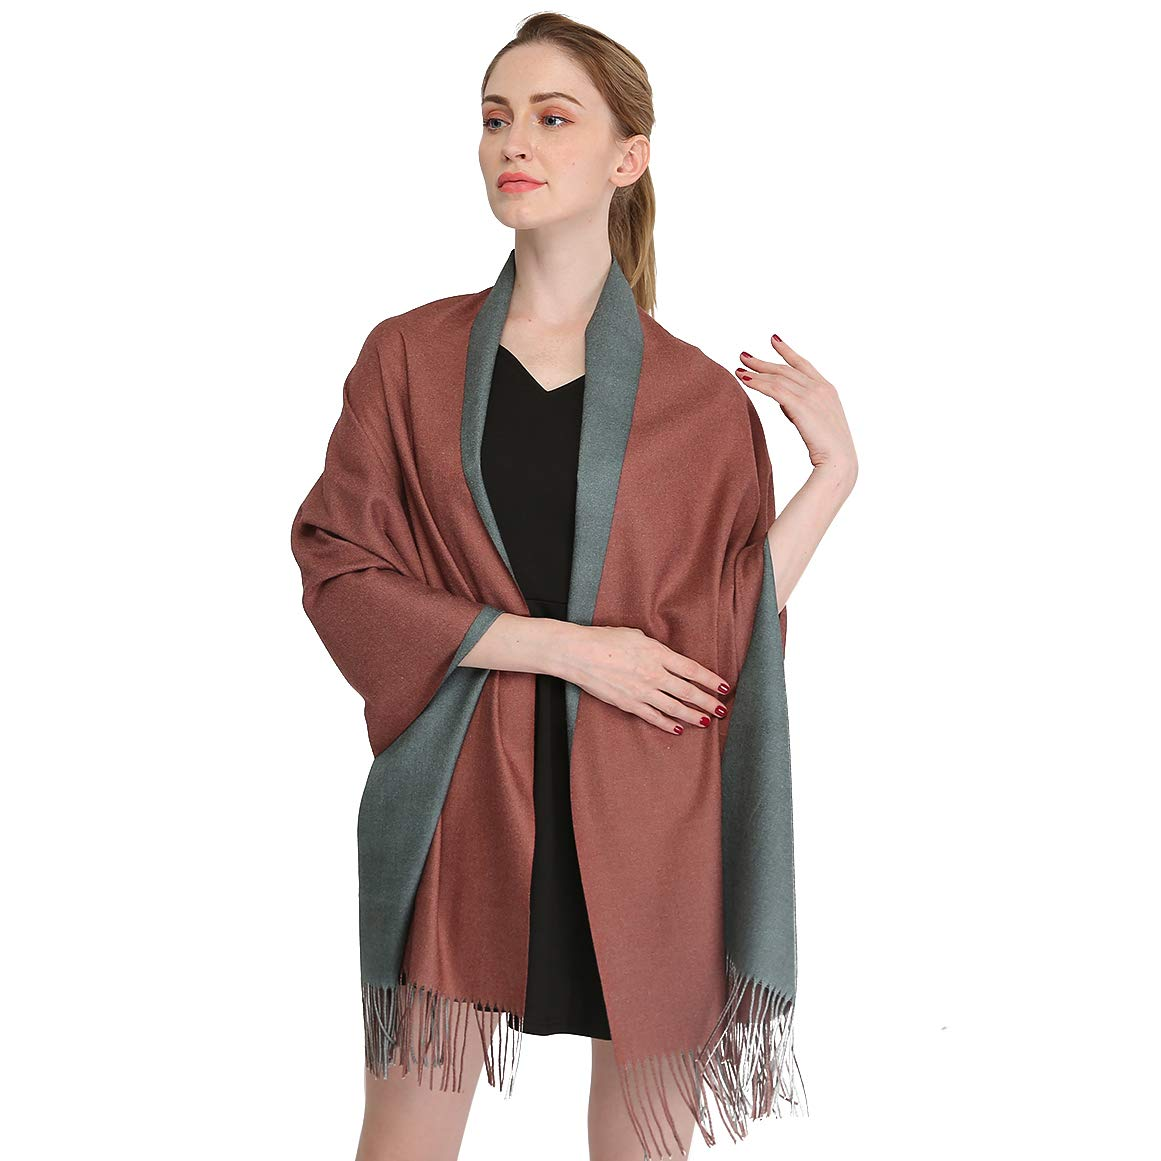 10  Longwu Cashmere Wrap Shawl Stole for Women Winter Extra Large(79  X 28 ) Men Solid Lambswool Pashmina Scarf